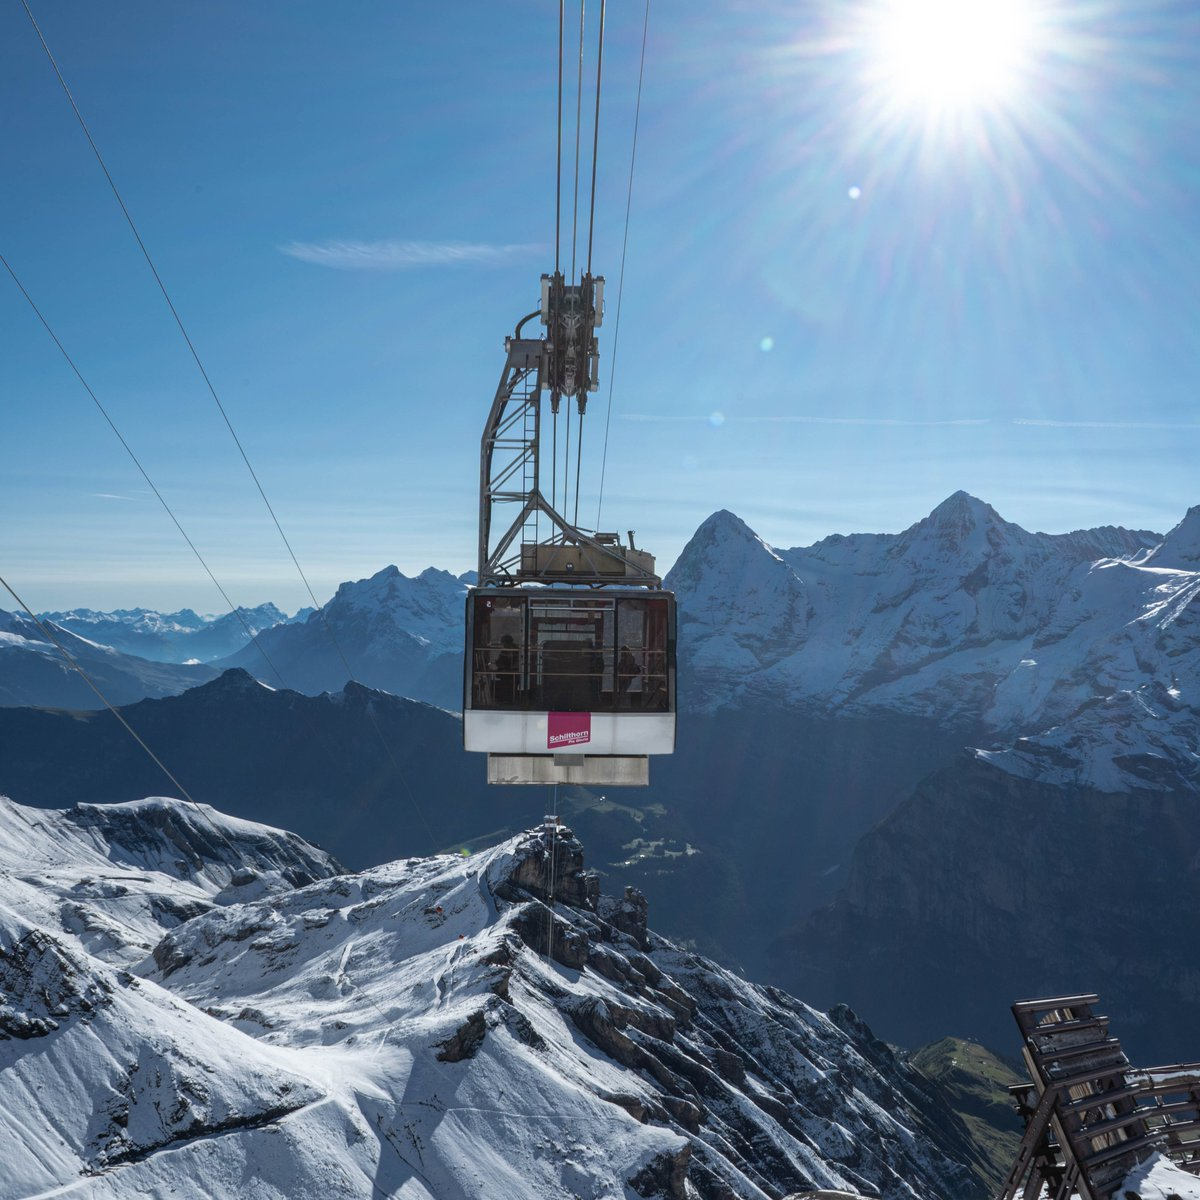 Eepp5GWXsAEkQ4A?format=jpg&name=medium - A new cableway for Piz Gloria